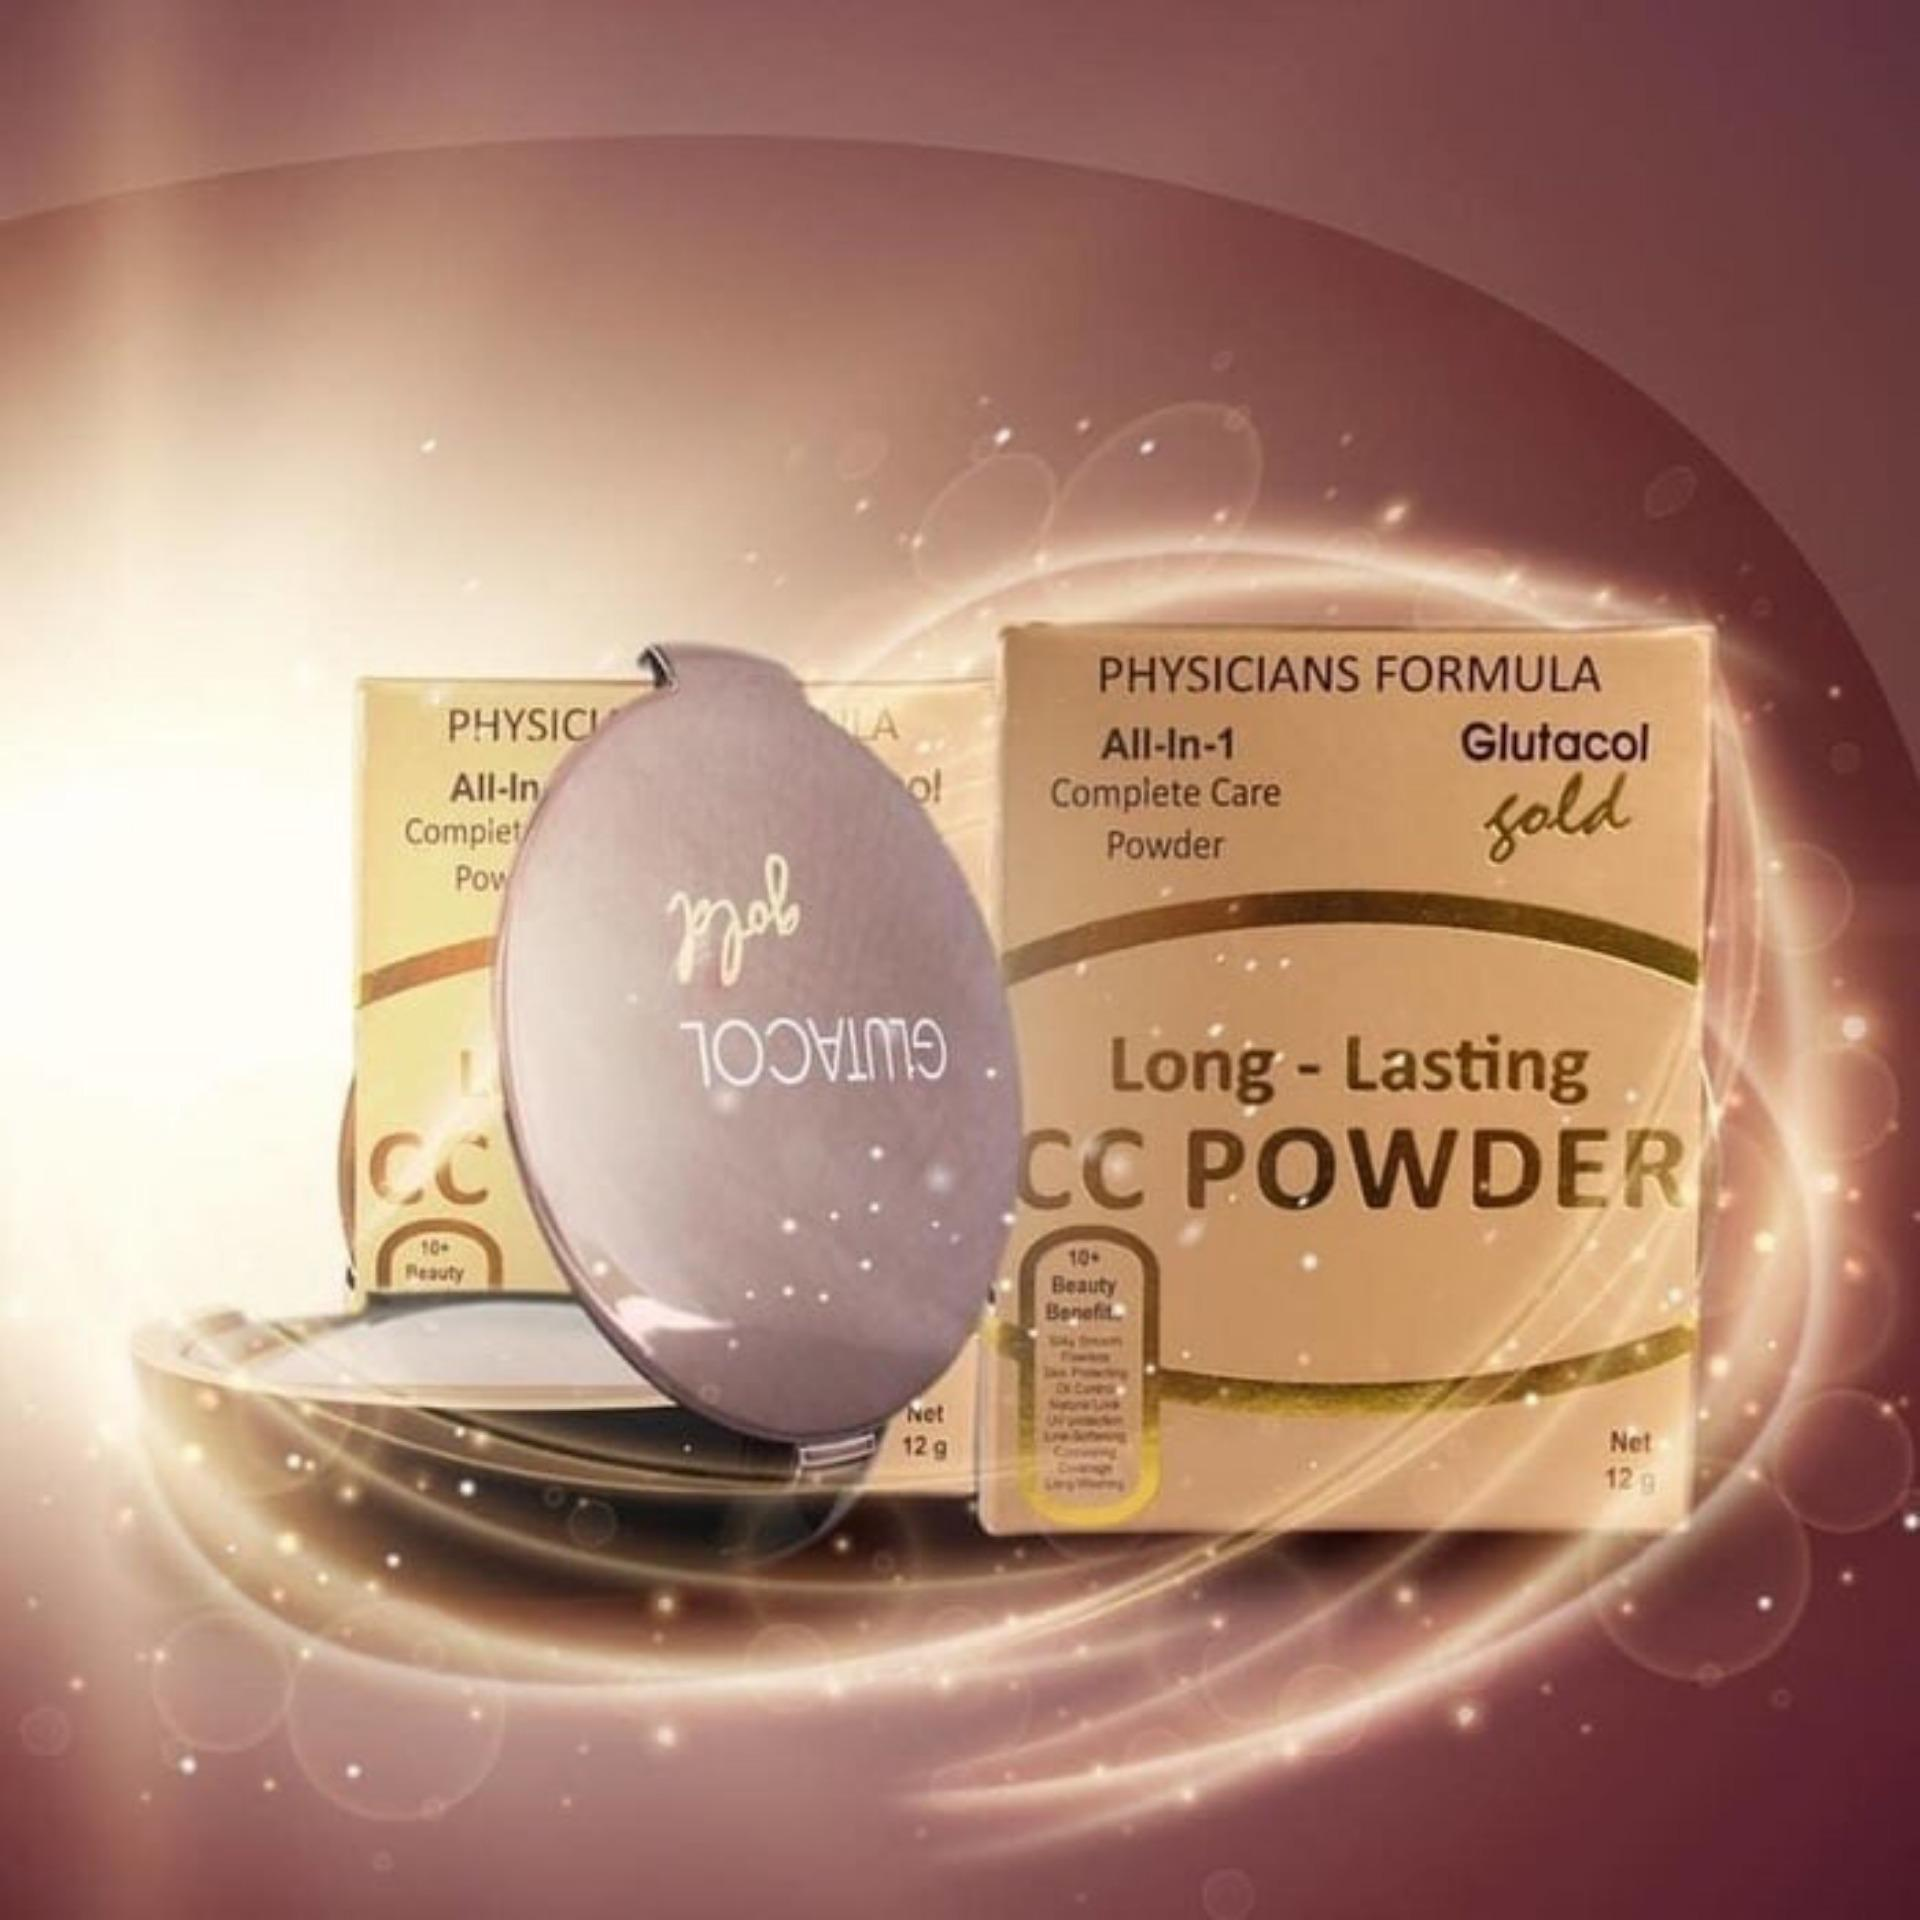 promo CC POWDER GLUTACOL GOLD BPOM original